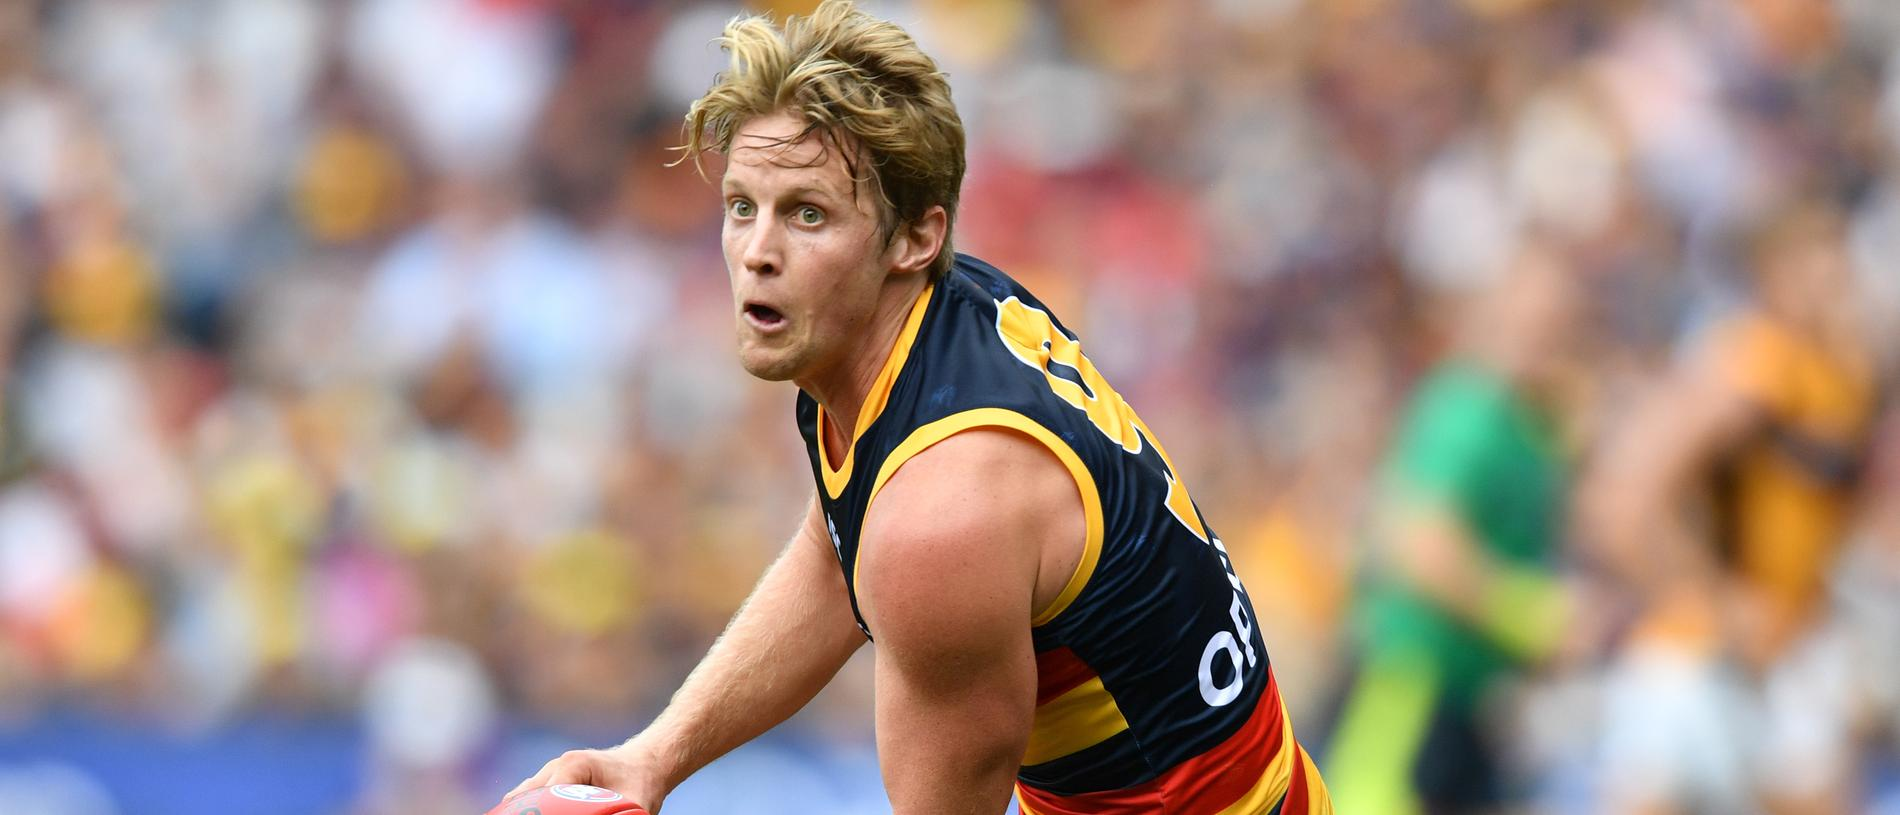 Rory Sloane of the Crows during the Round 1 AFL match between the Adelaide Crows v Hawthorn Hawks at the Adelaide Oval in Adelaide, Saturday, March 23, 2019. (AAP Image/David Mariuz) NO ARCHIVING, EDITORIAL USE ONLY